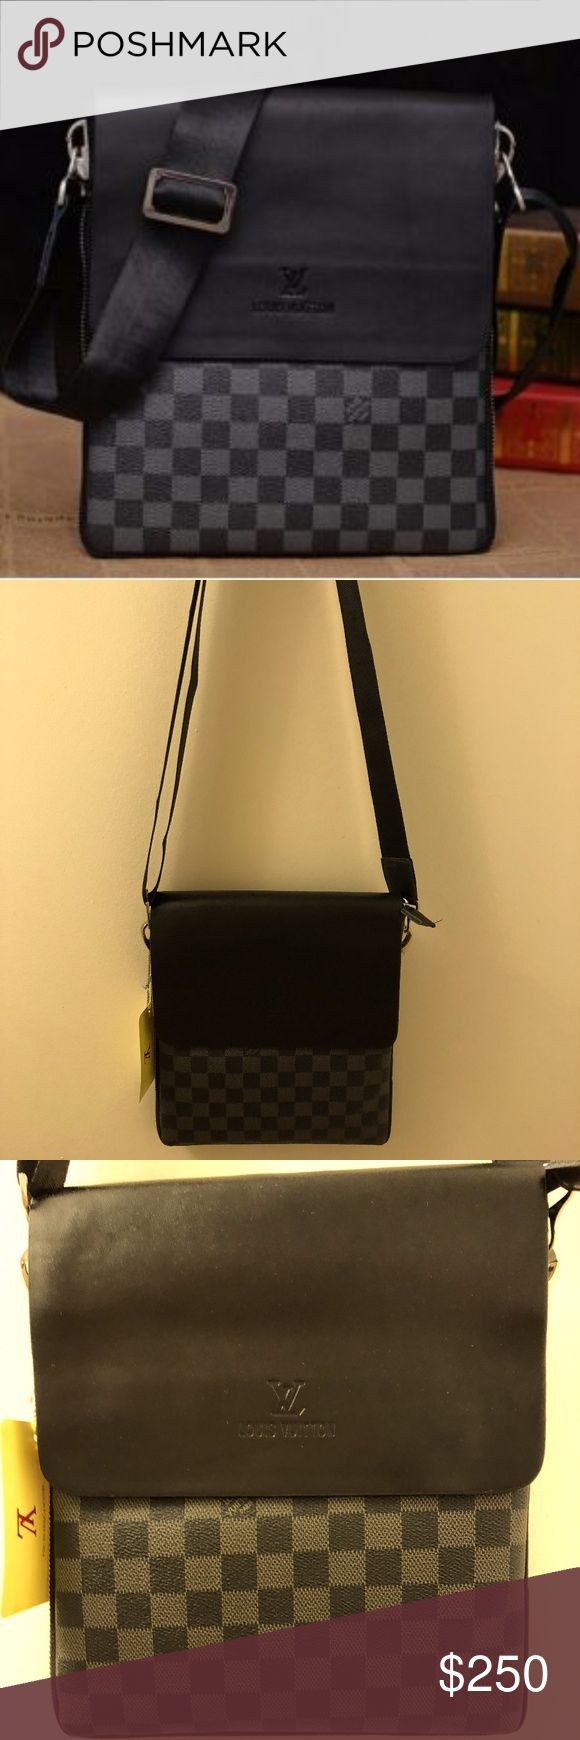 Mens Messenger Bag Great Quality, Price reflects so don't ask, great quality, unzips for expansion. I ship same day. Louis Vuitton Bags